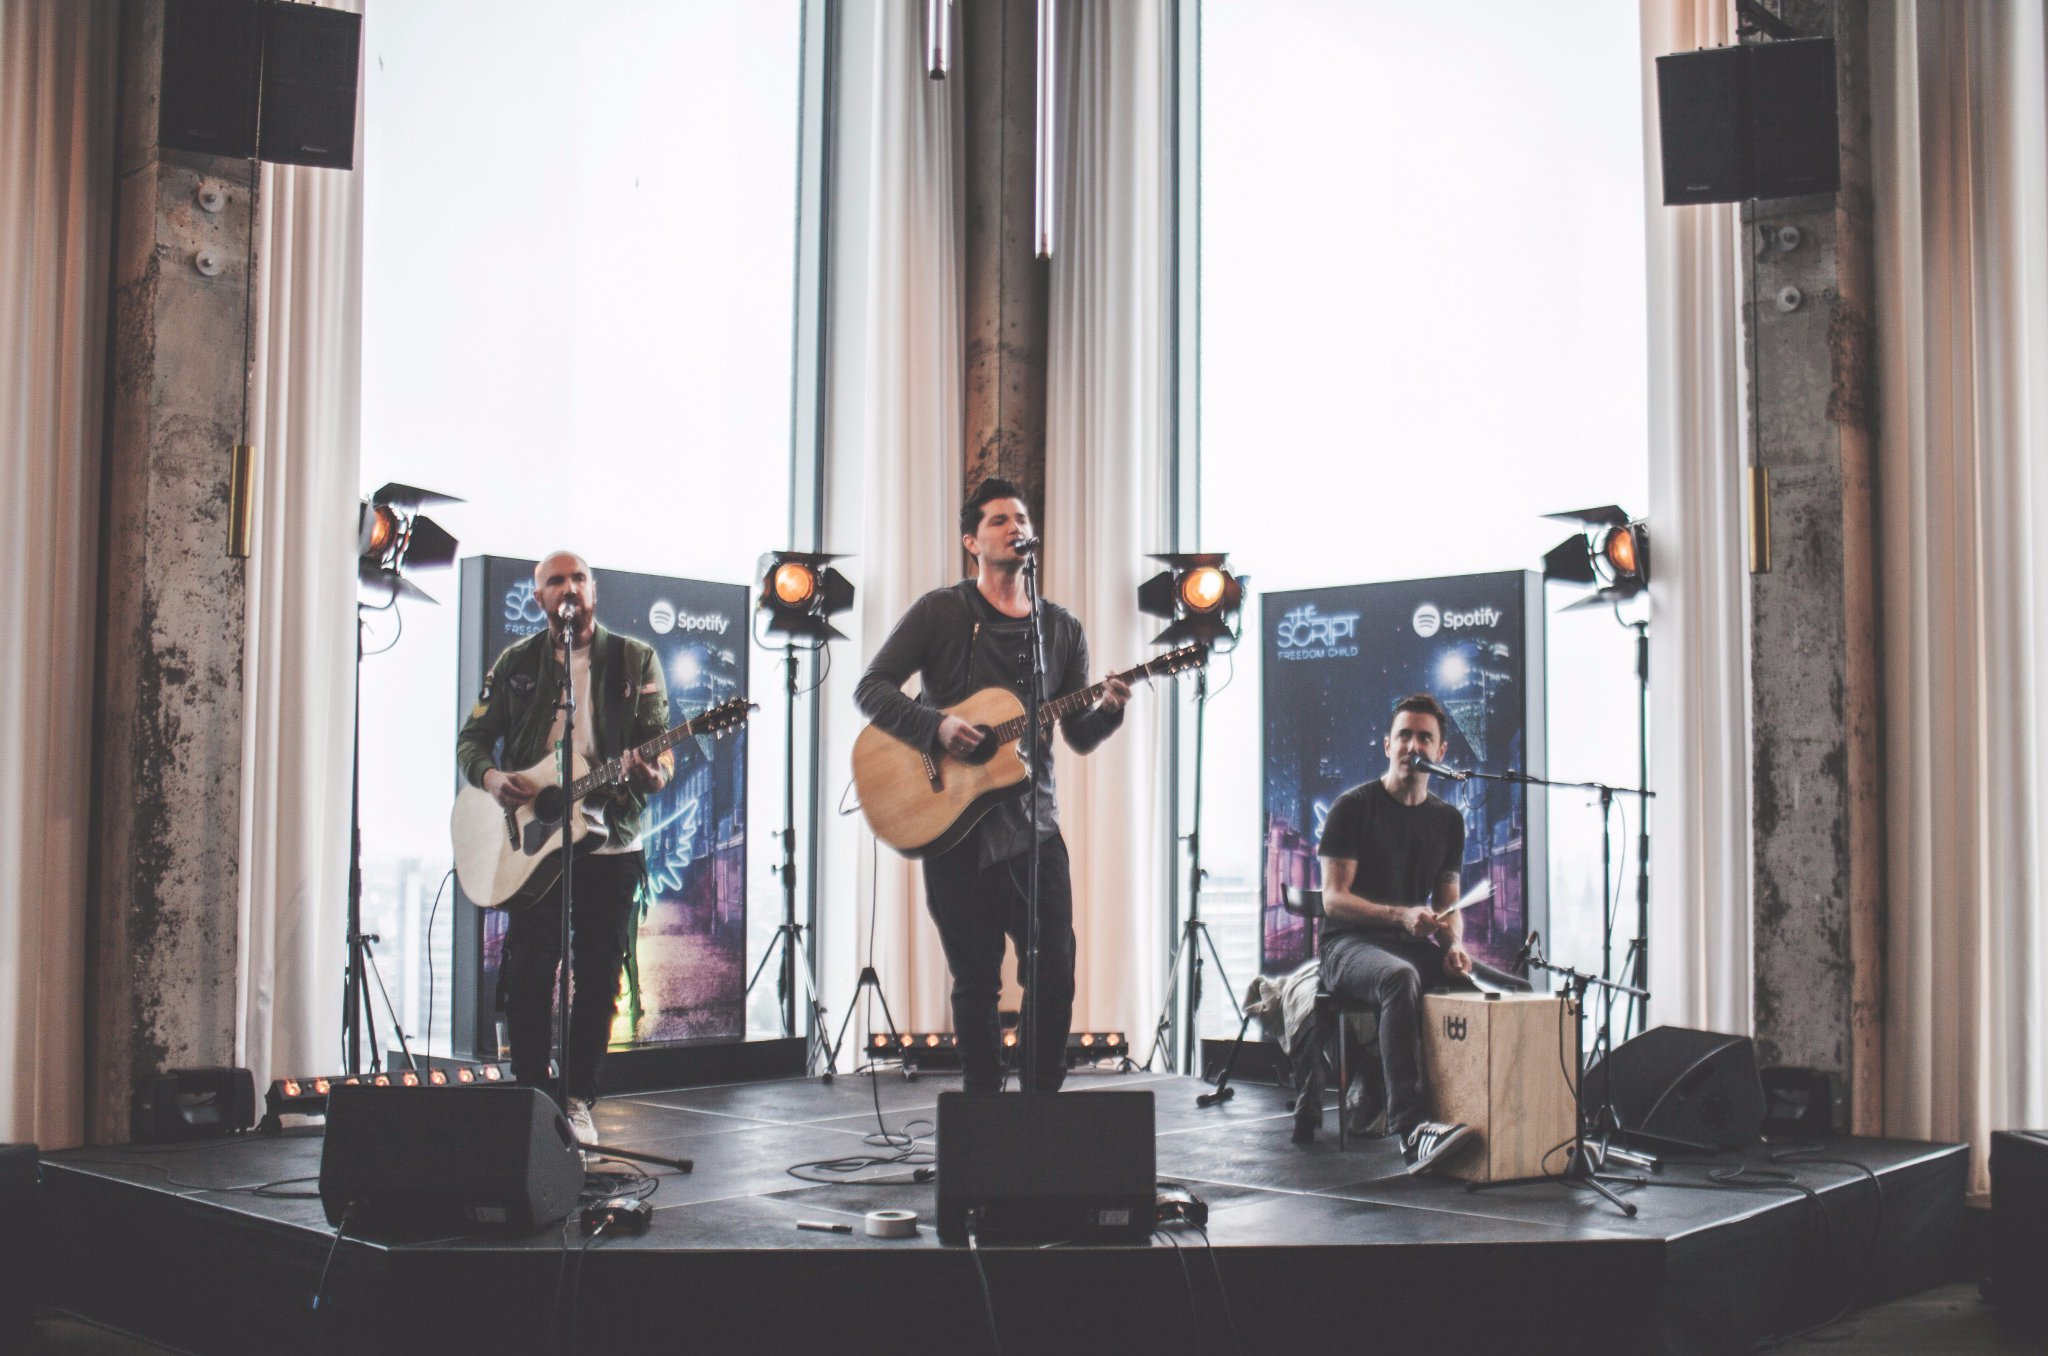 We had a blast playing for our Dutch @Spotify fans during our #SpotifyFanFirst event last week! https://t.co/nhOOYs1EzV